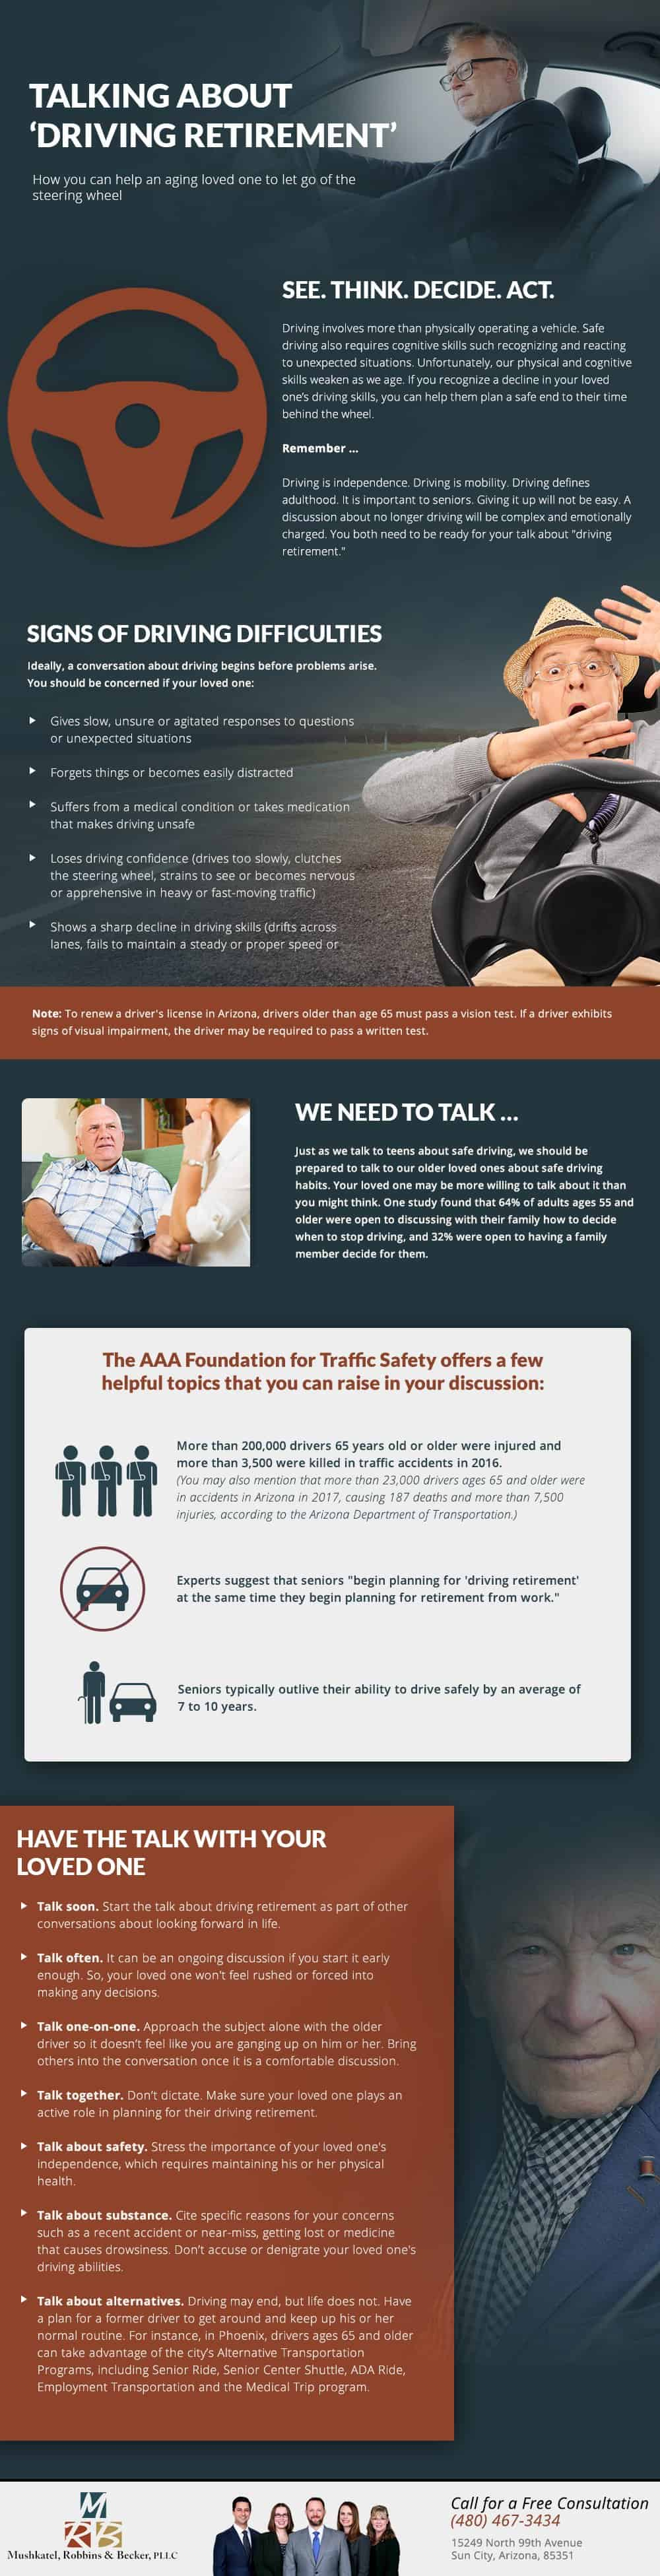 Driving Retirement Infographic